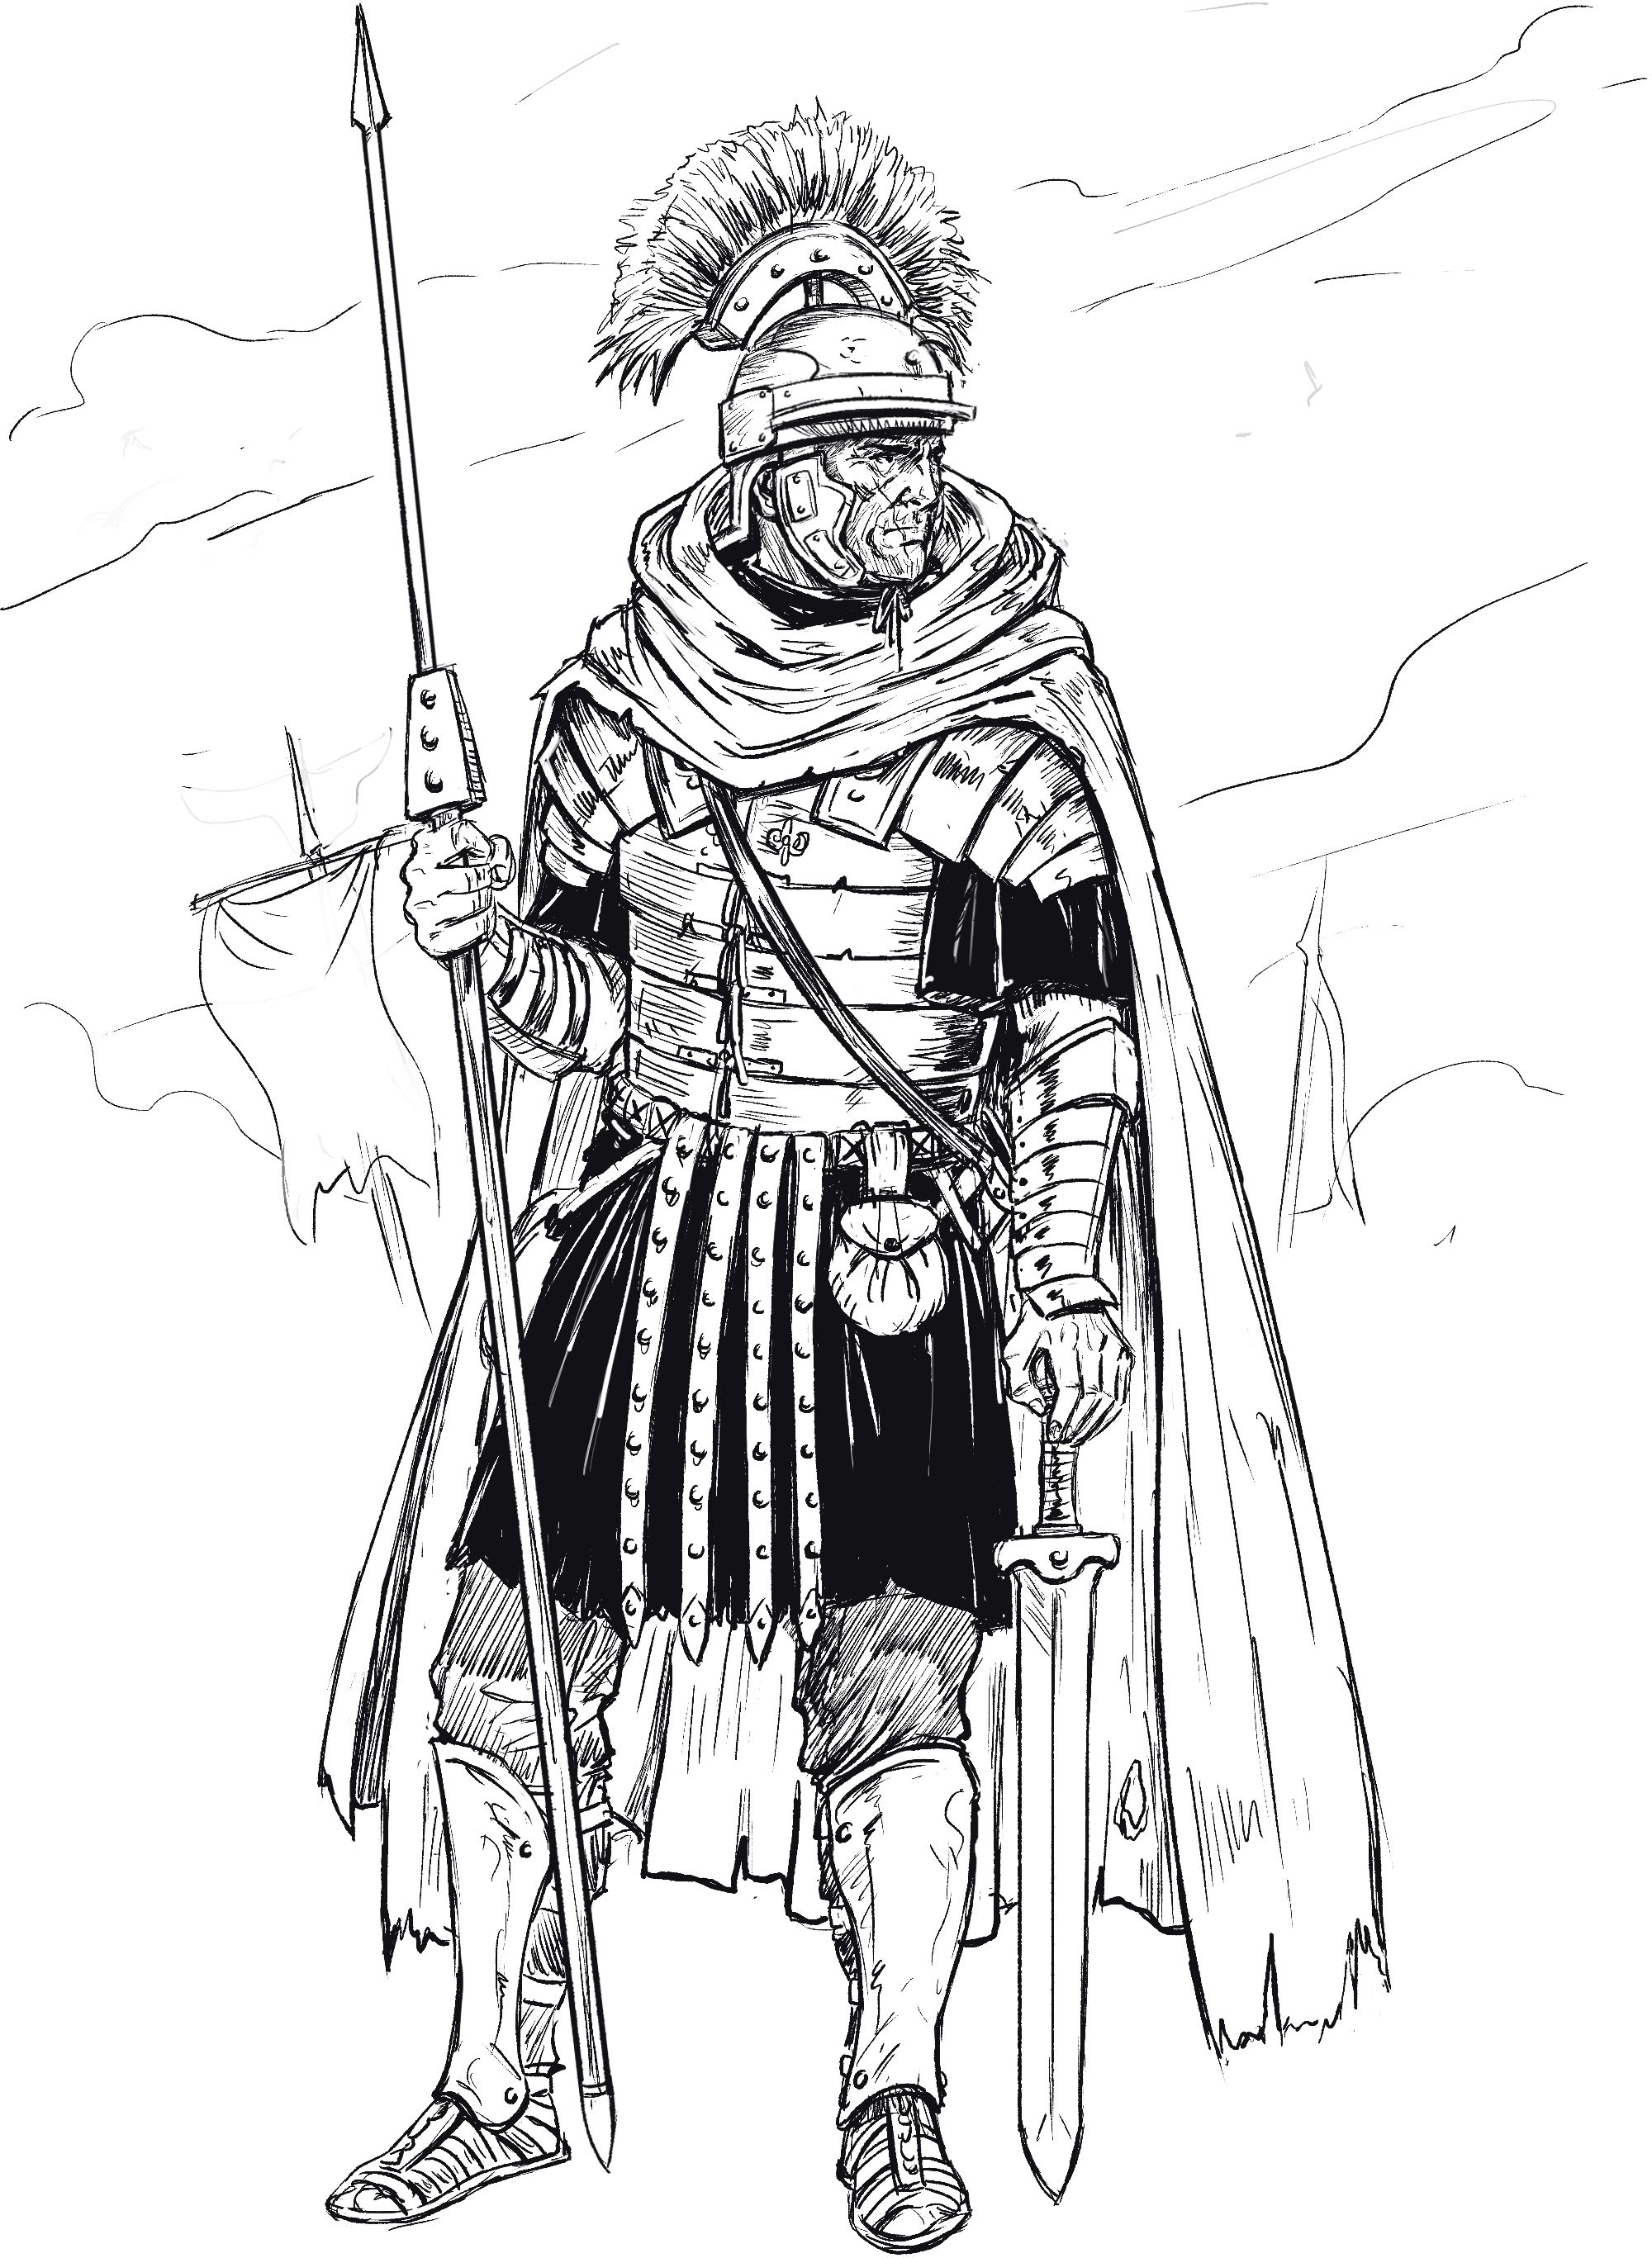 Learn To Draw A Roman Soldier In 7 Easy Steps Improveyourdrawings Com Roman Soldiers Soldier Drawing Roman Armor